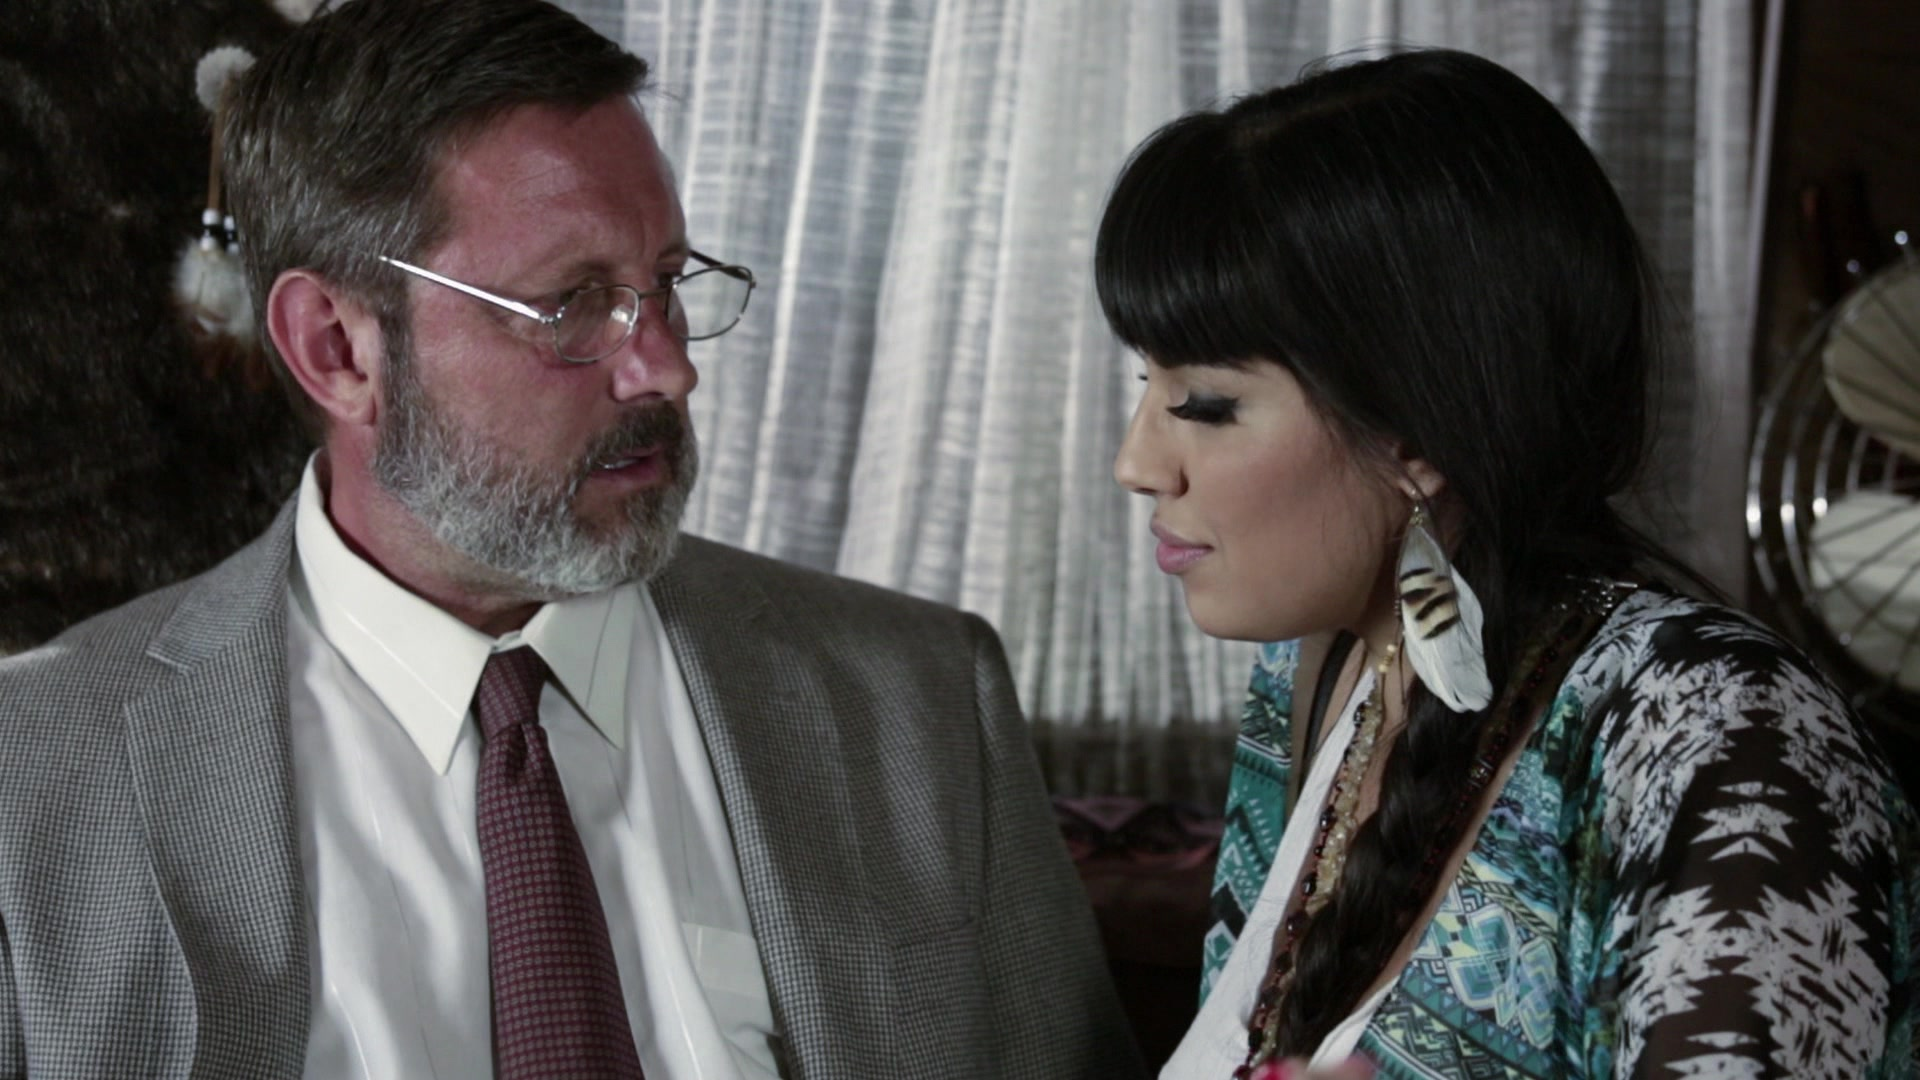 Scene with Brad Armstrong and Mercedes Carrera - image 5 out of 20